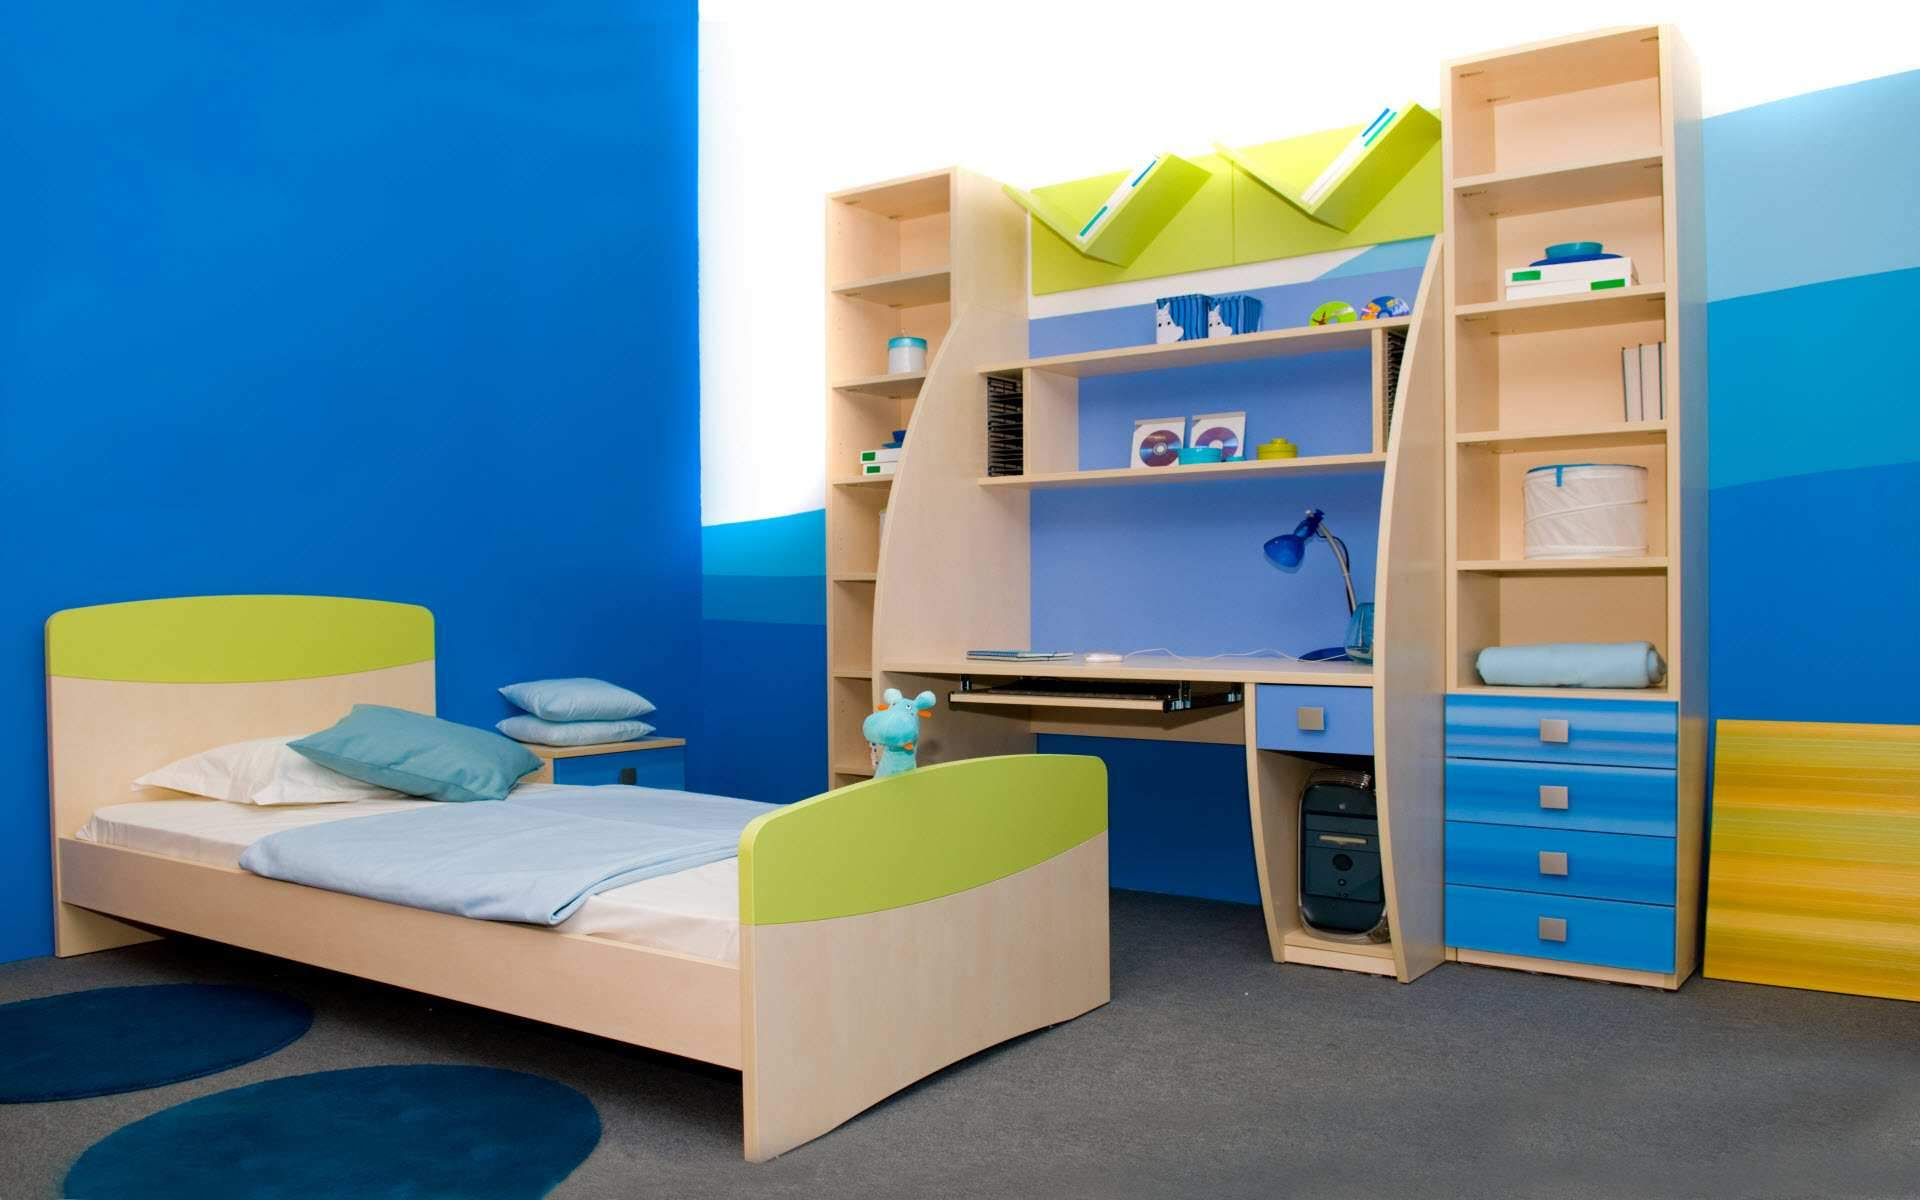 interior-inspiring-top-awesome-blue-interior-design-modern-blue-kids-bedroom-with-natural-study-desk-furniture_f926